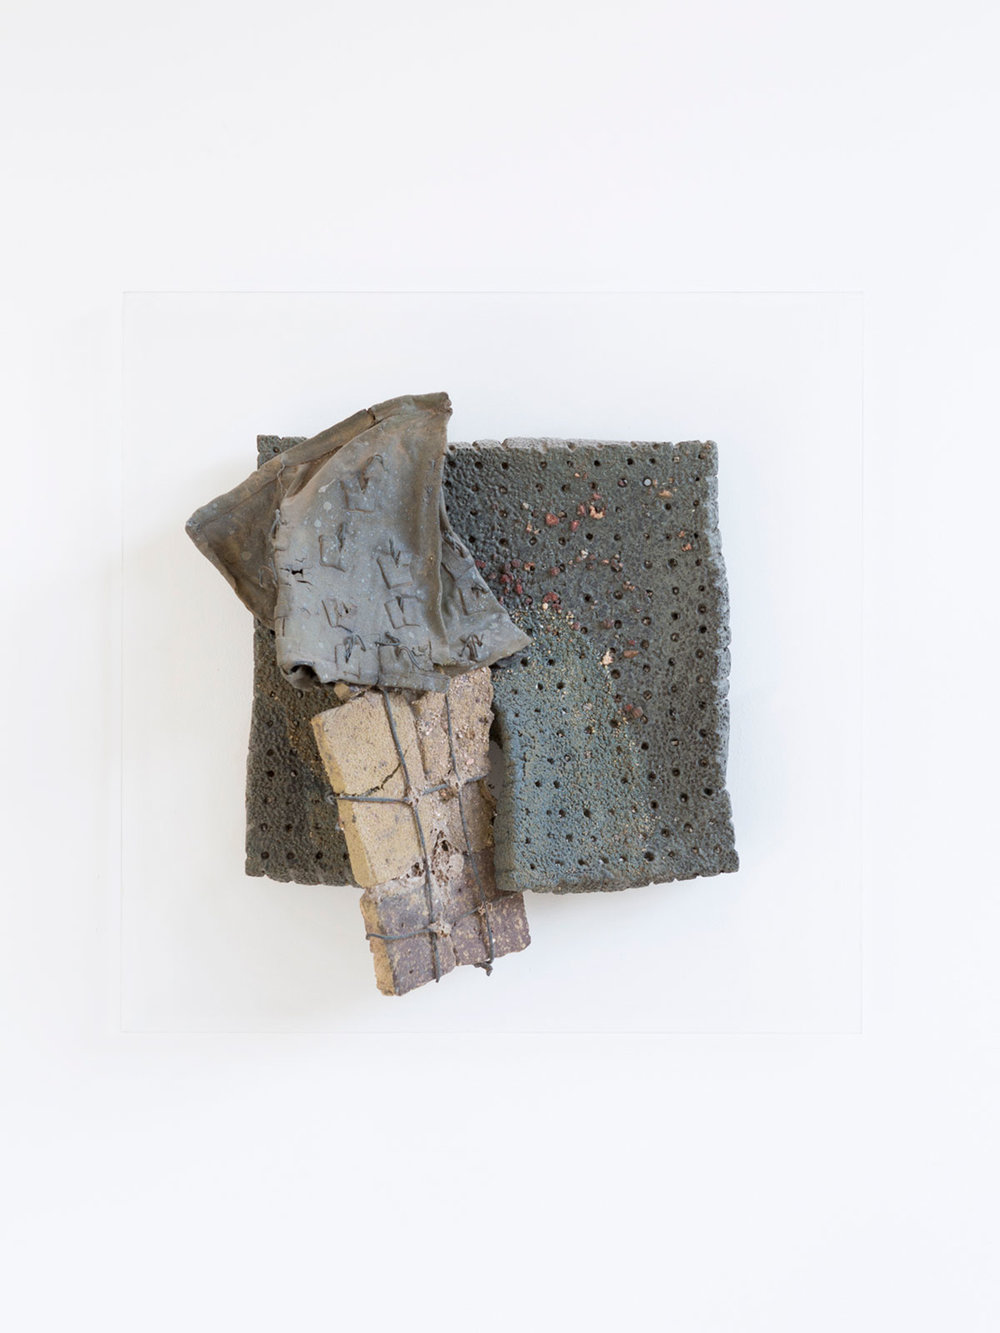 11.-Wall-mounted-Brick-Bag1981-Melted-brick-in-fibreglass-bag-ceramic-wire-46-x-46-x-14-cm - Copy.jpg